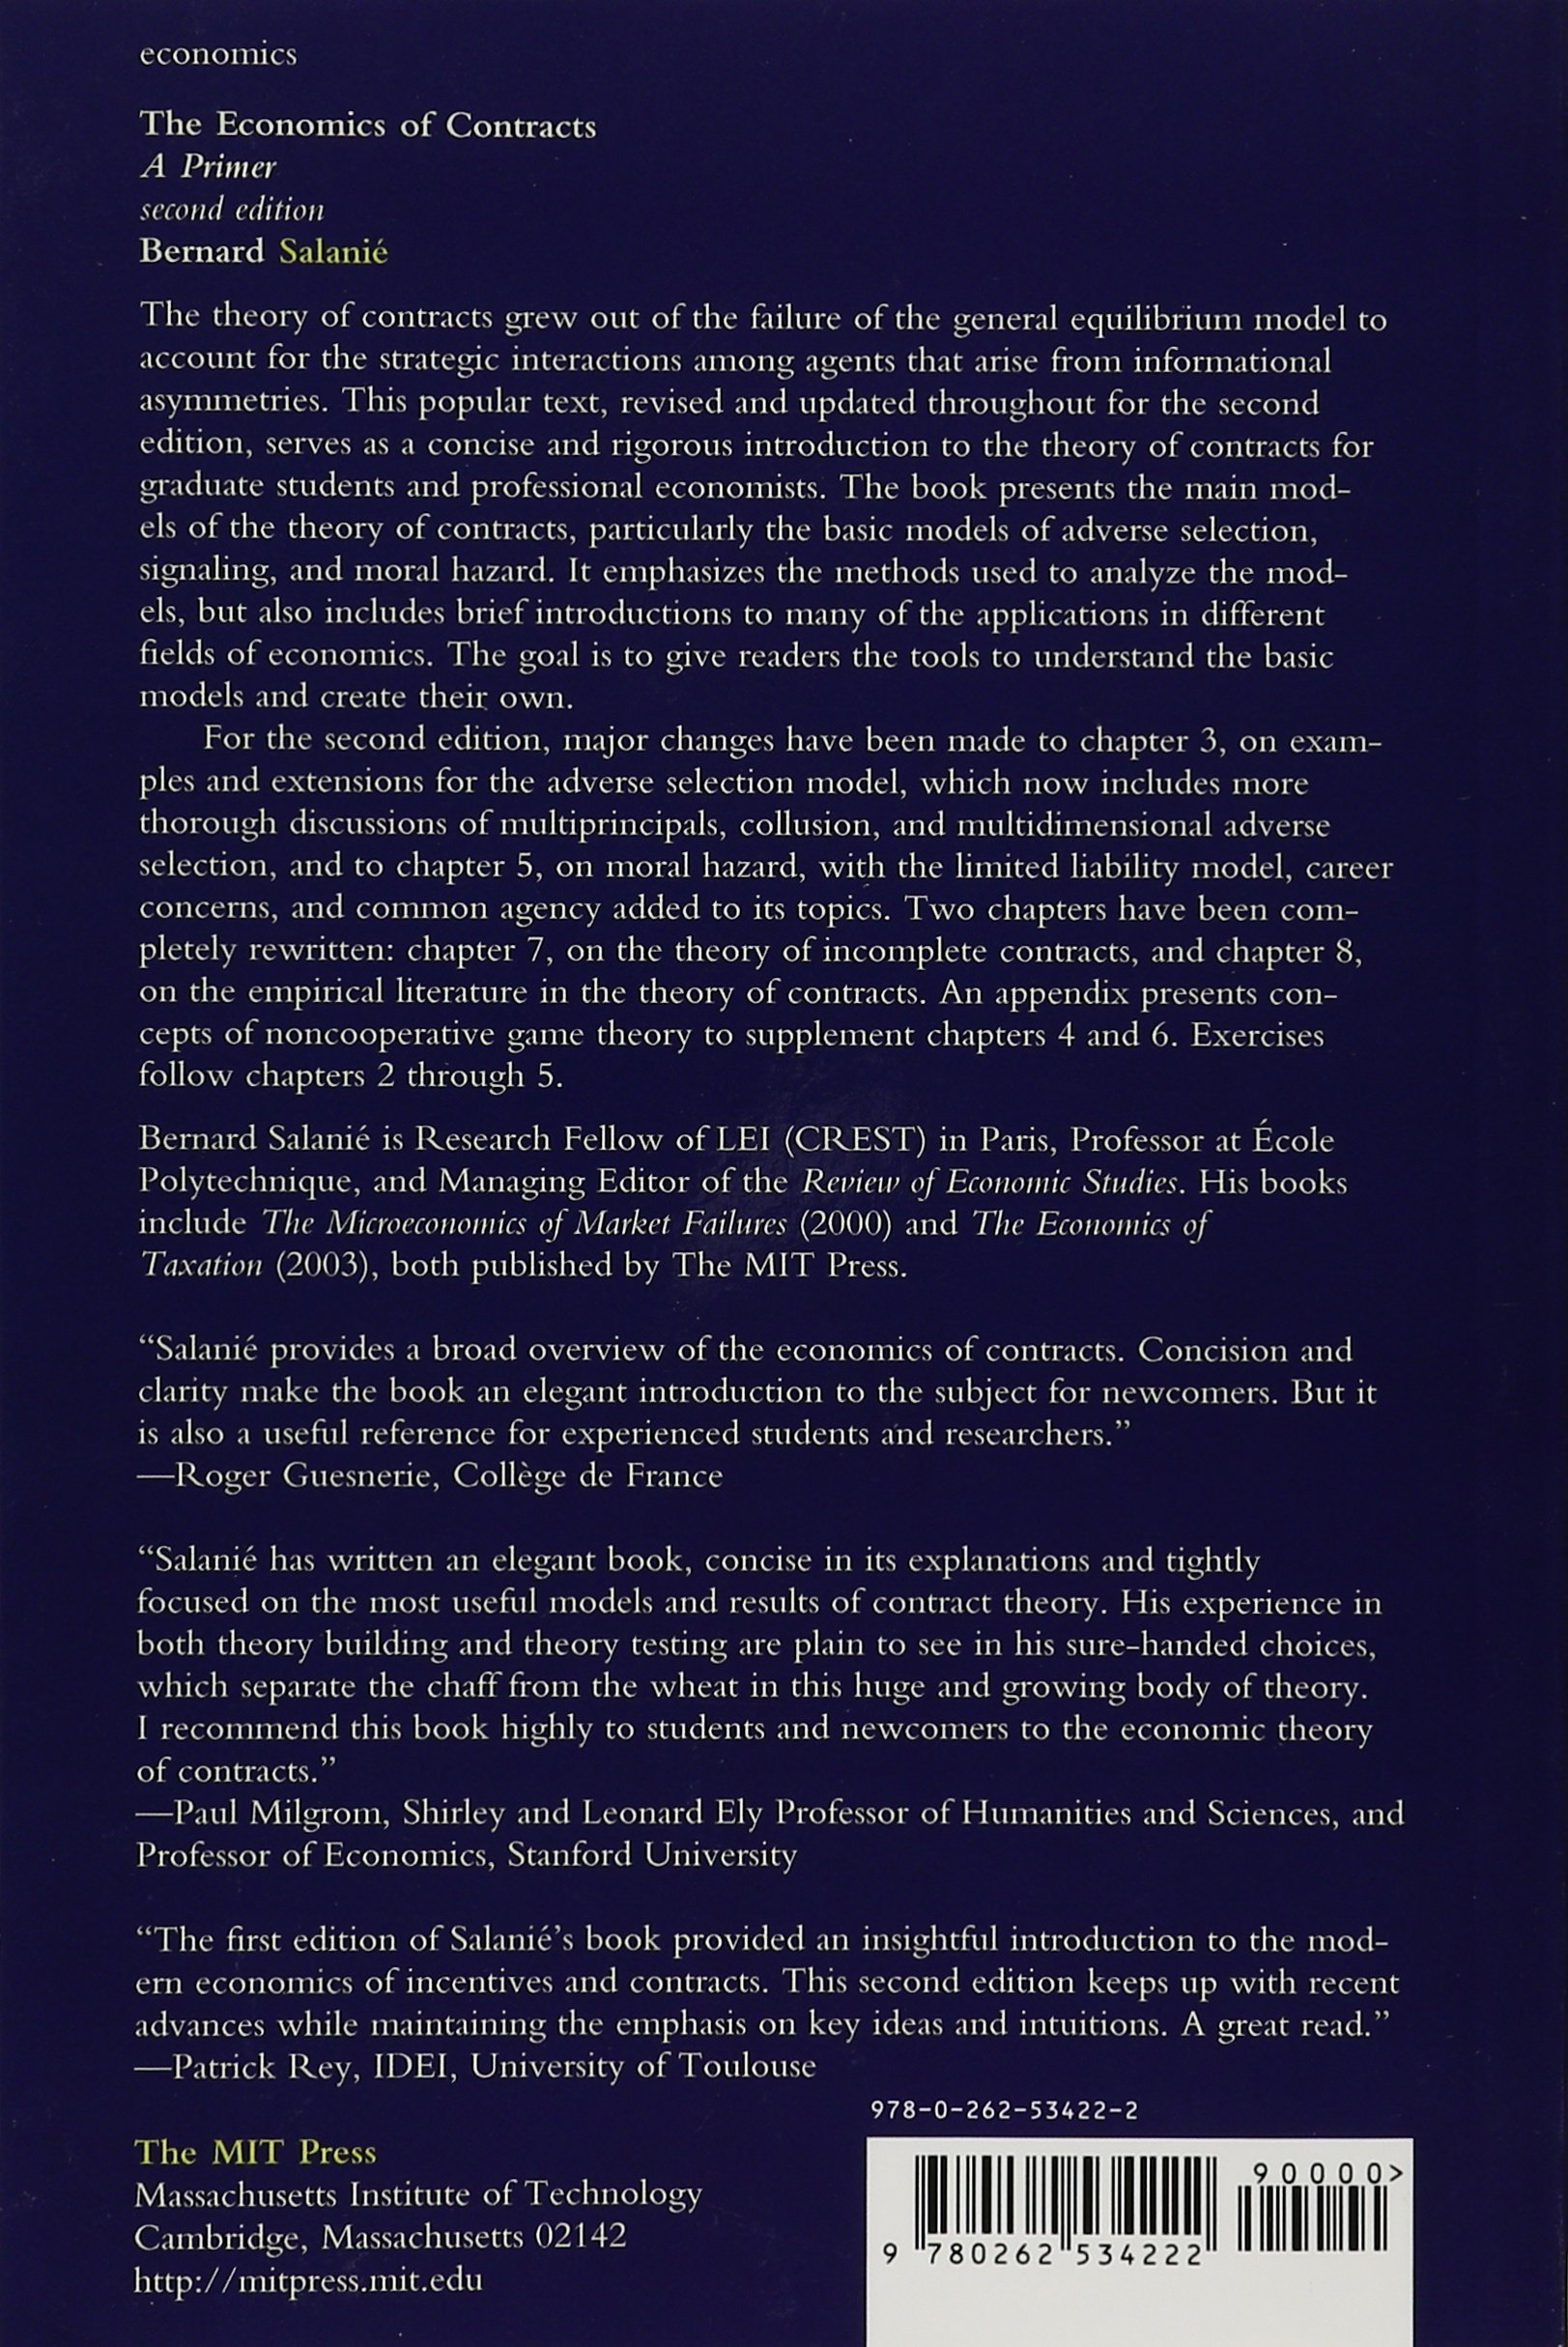 Download The Economics of Contracts: A Primer, 2nd Edition (MIT Pres…